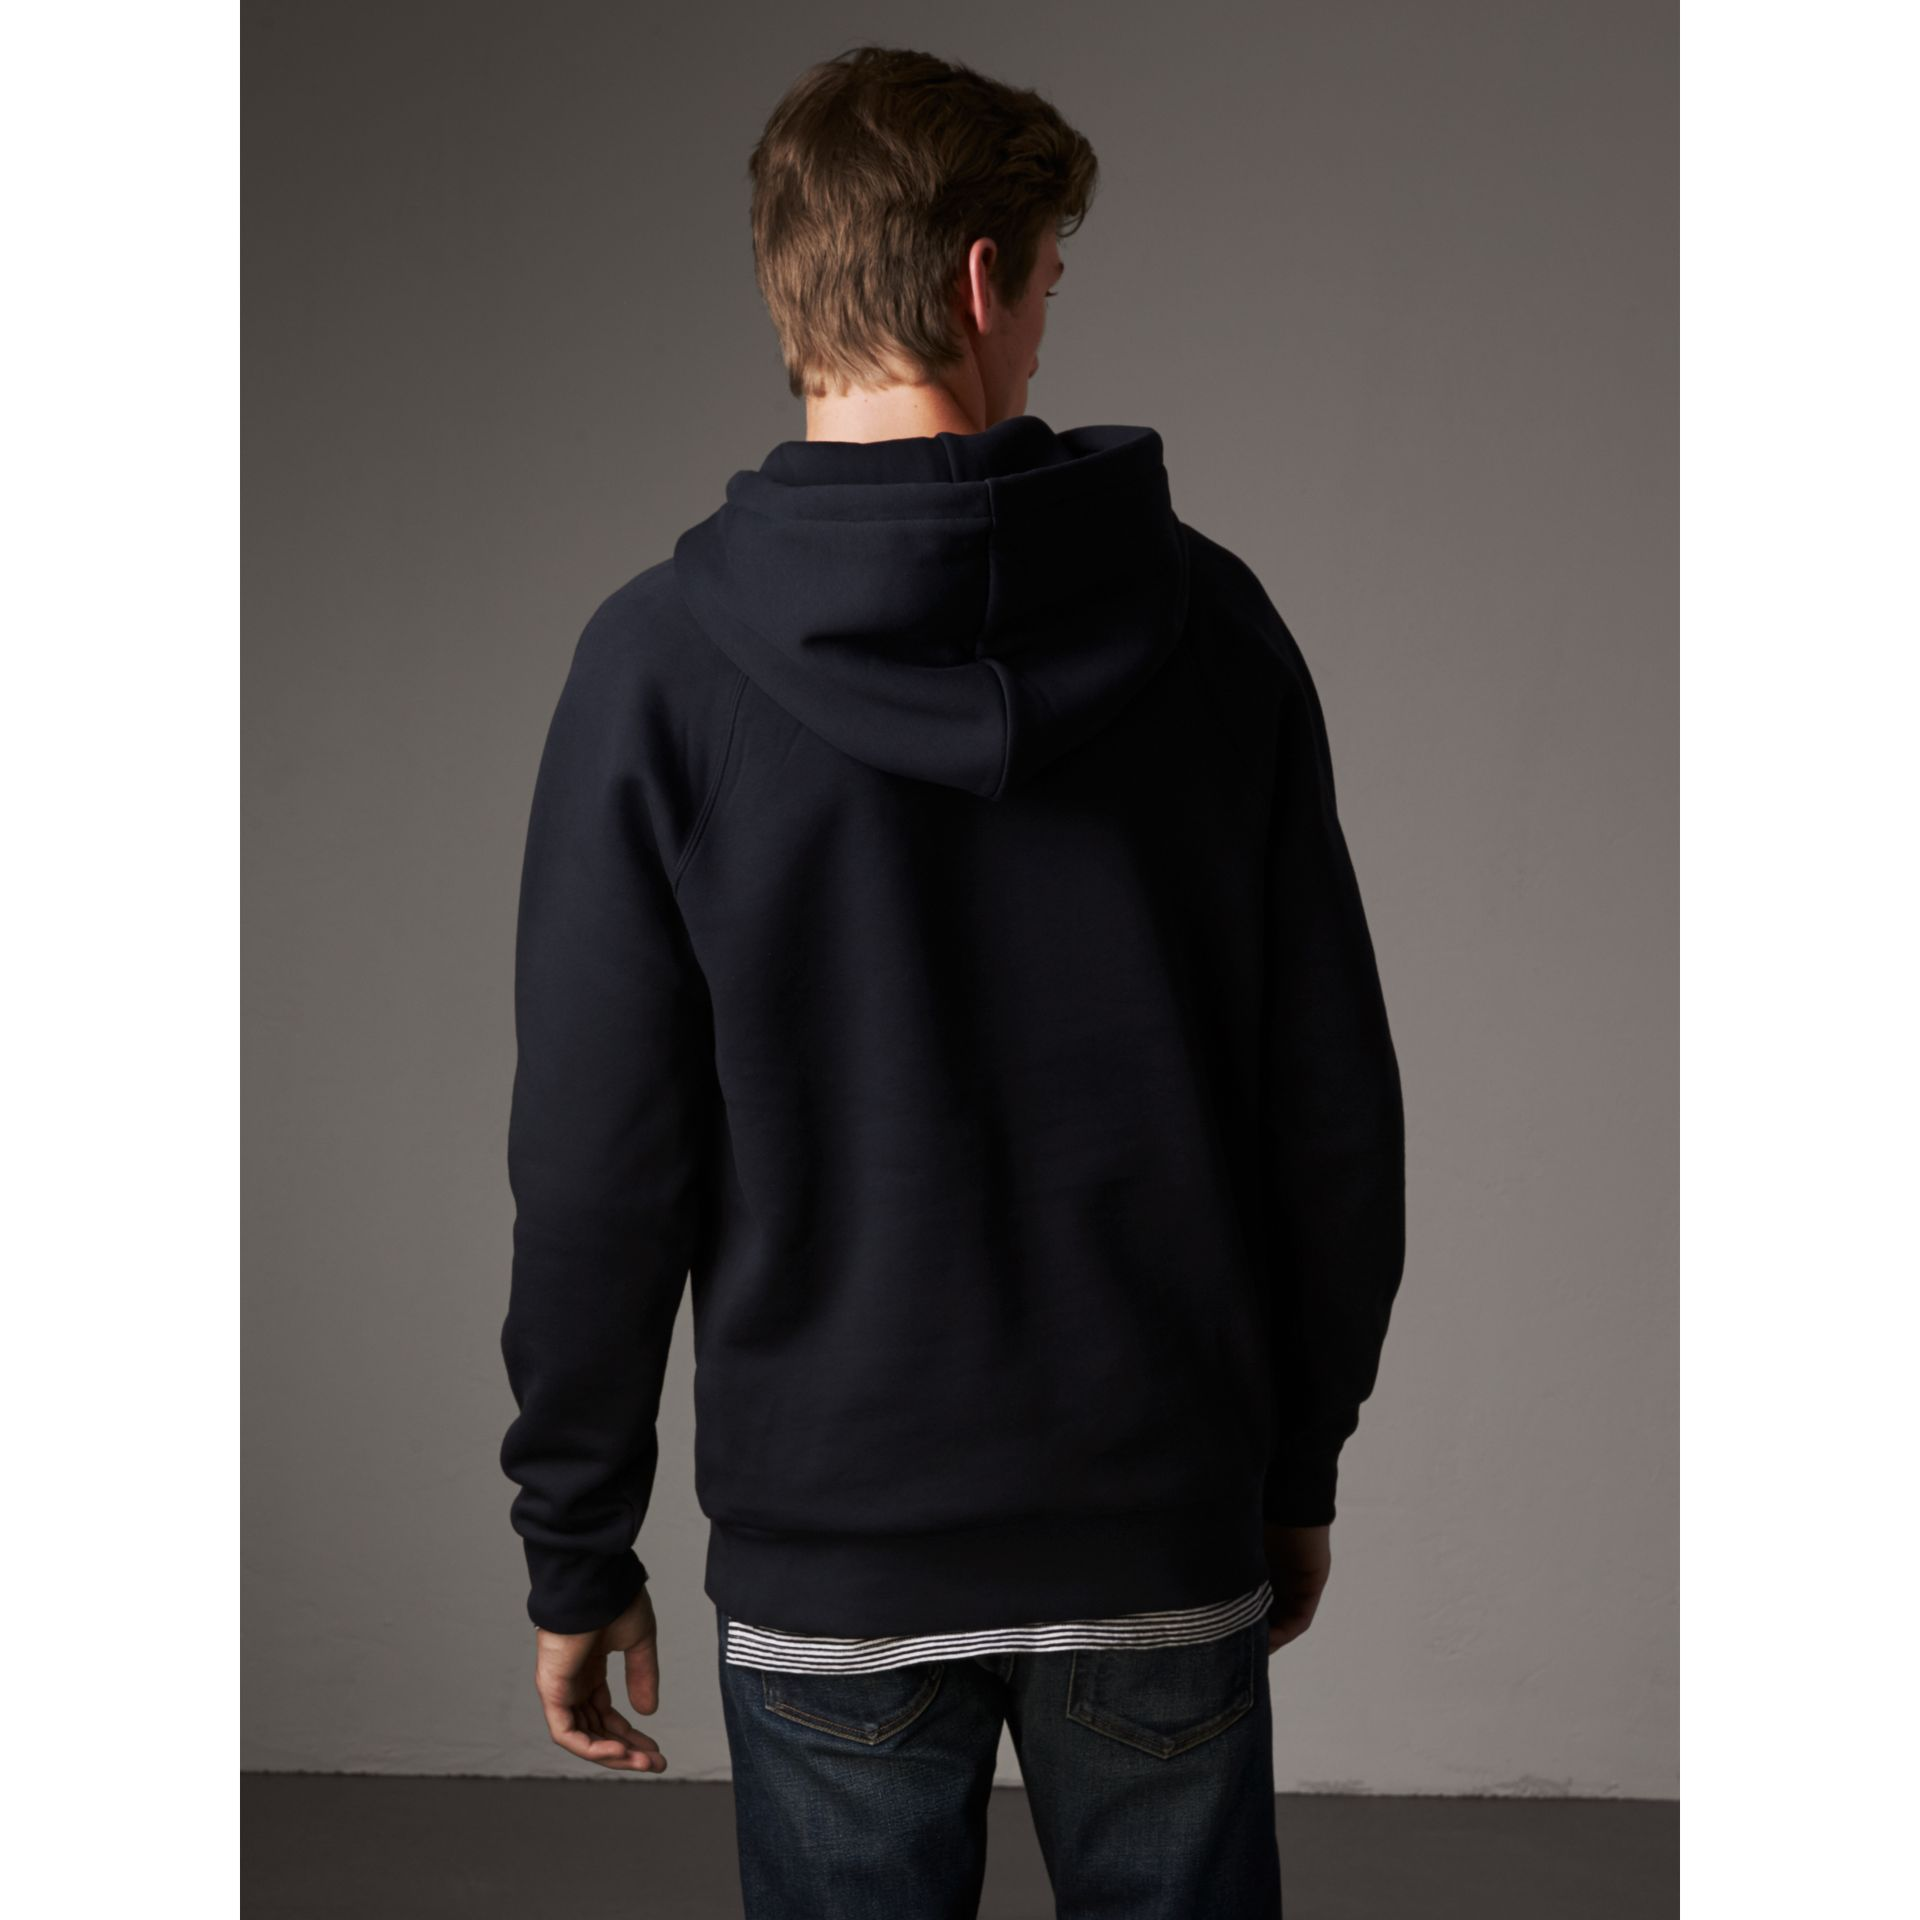 Embroidered Hooded Sweatshirt in Navy - Men | Burberry Singapore - gallery image 2